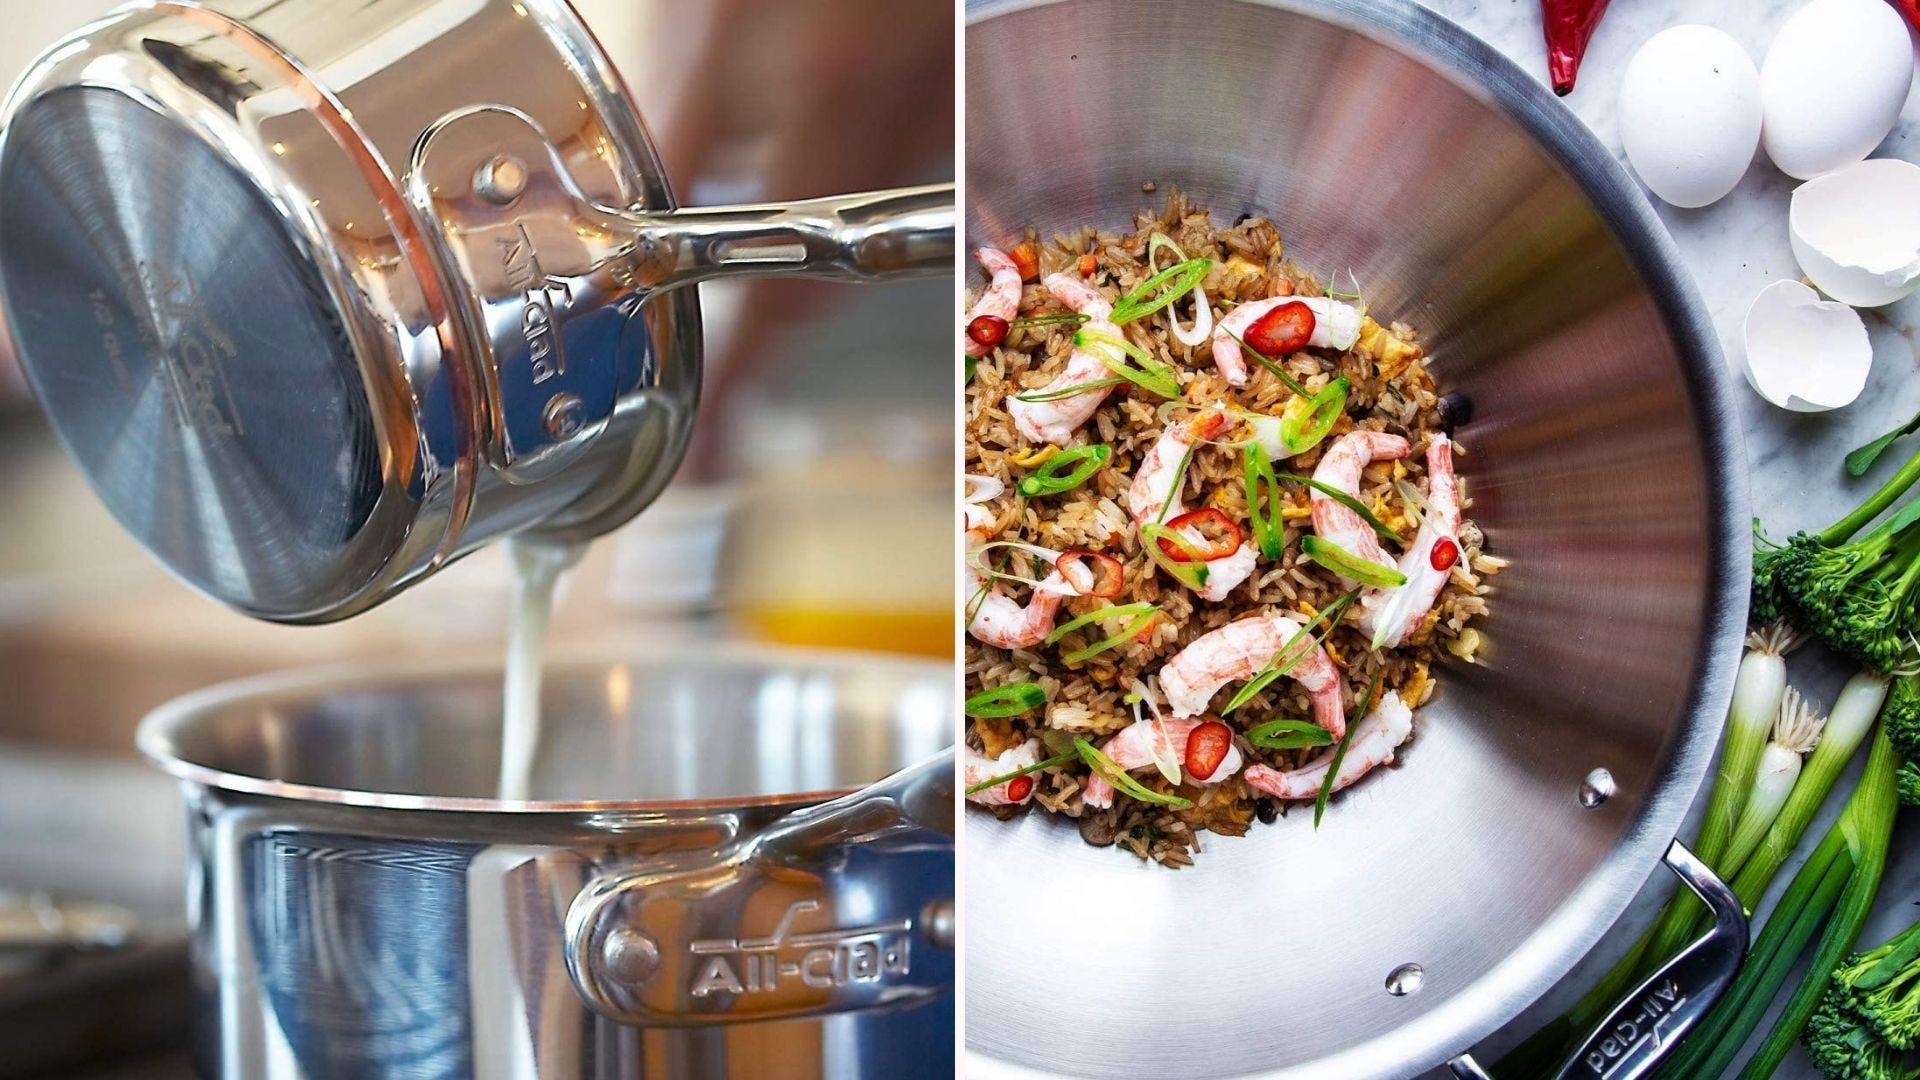 Two images featuring the All-Clad copper core cookware. The left image features two pots and the right image features a wok skillet with various ingredients surrounding the pan.